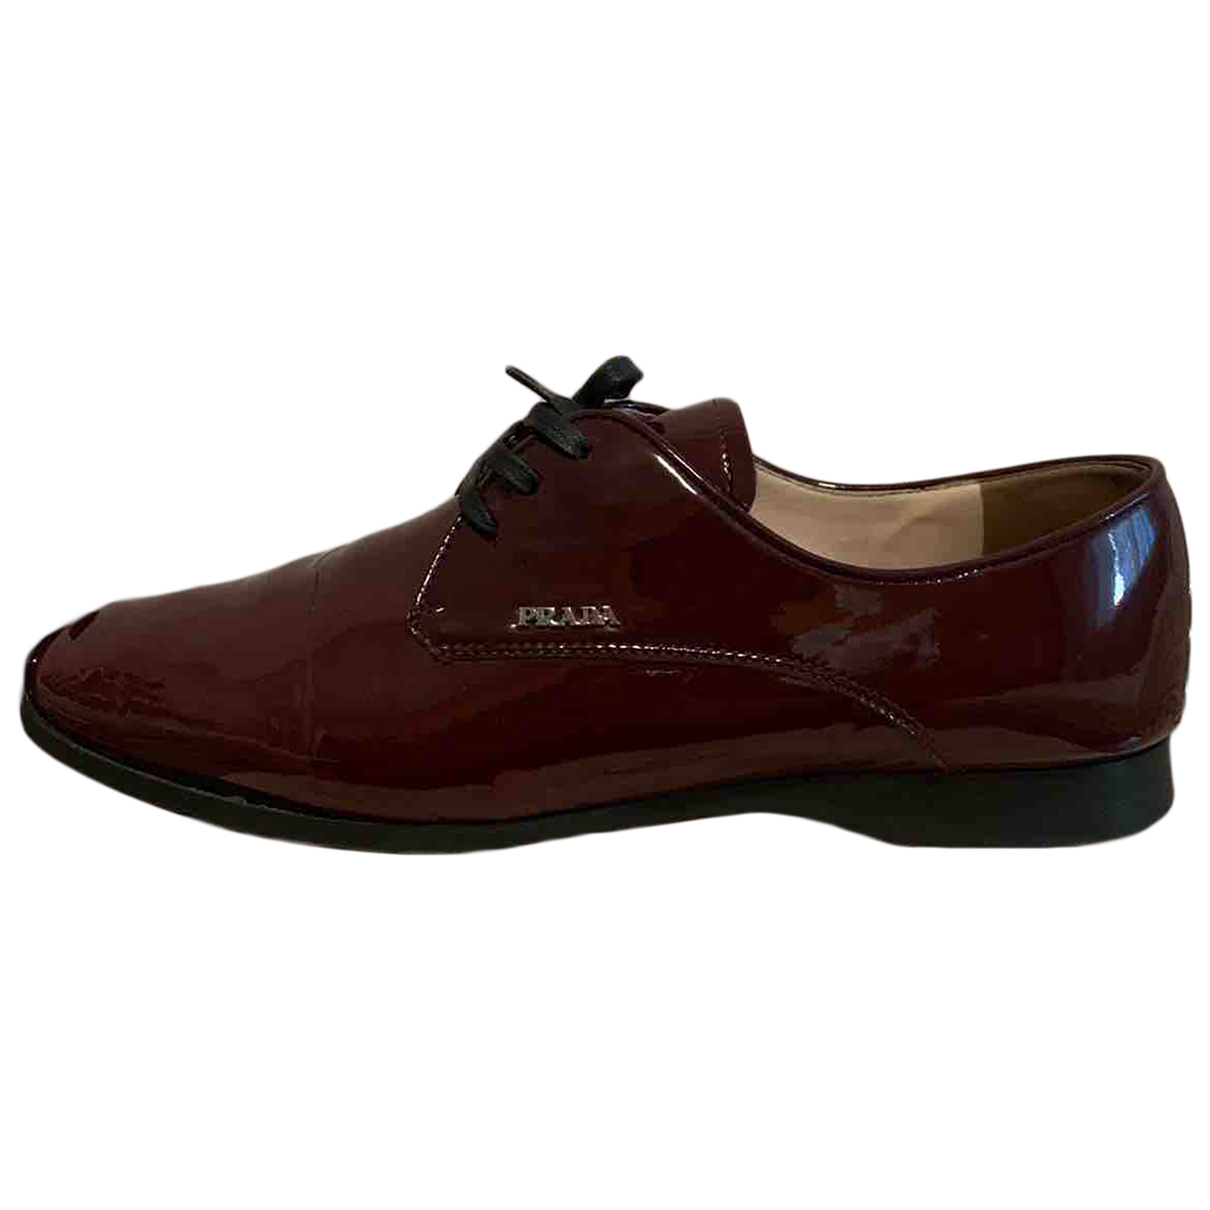 Prada N Burgundy Patent leather Lace ups for Women 39 EU